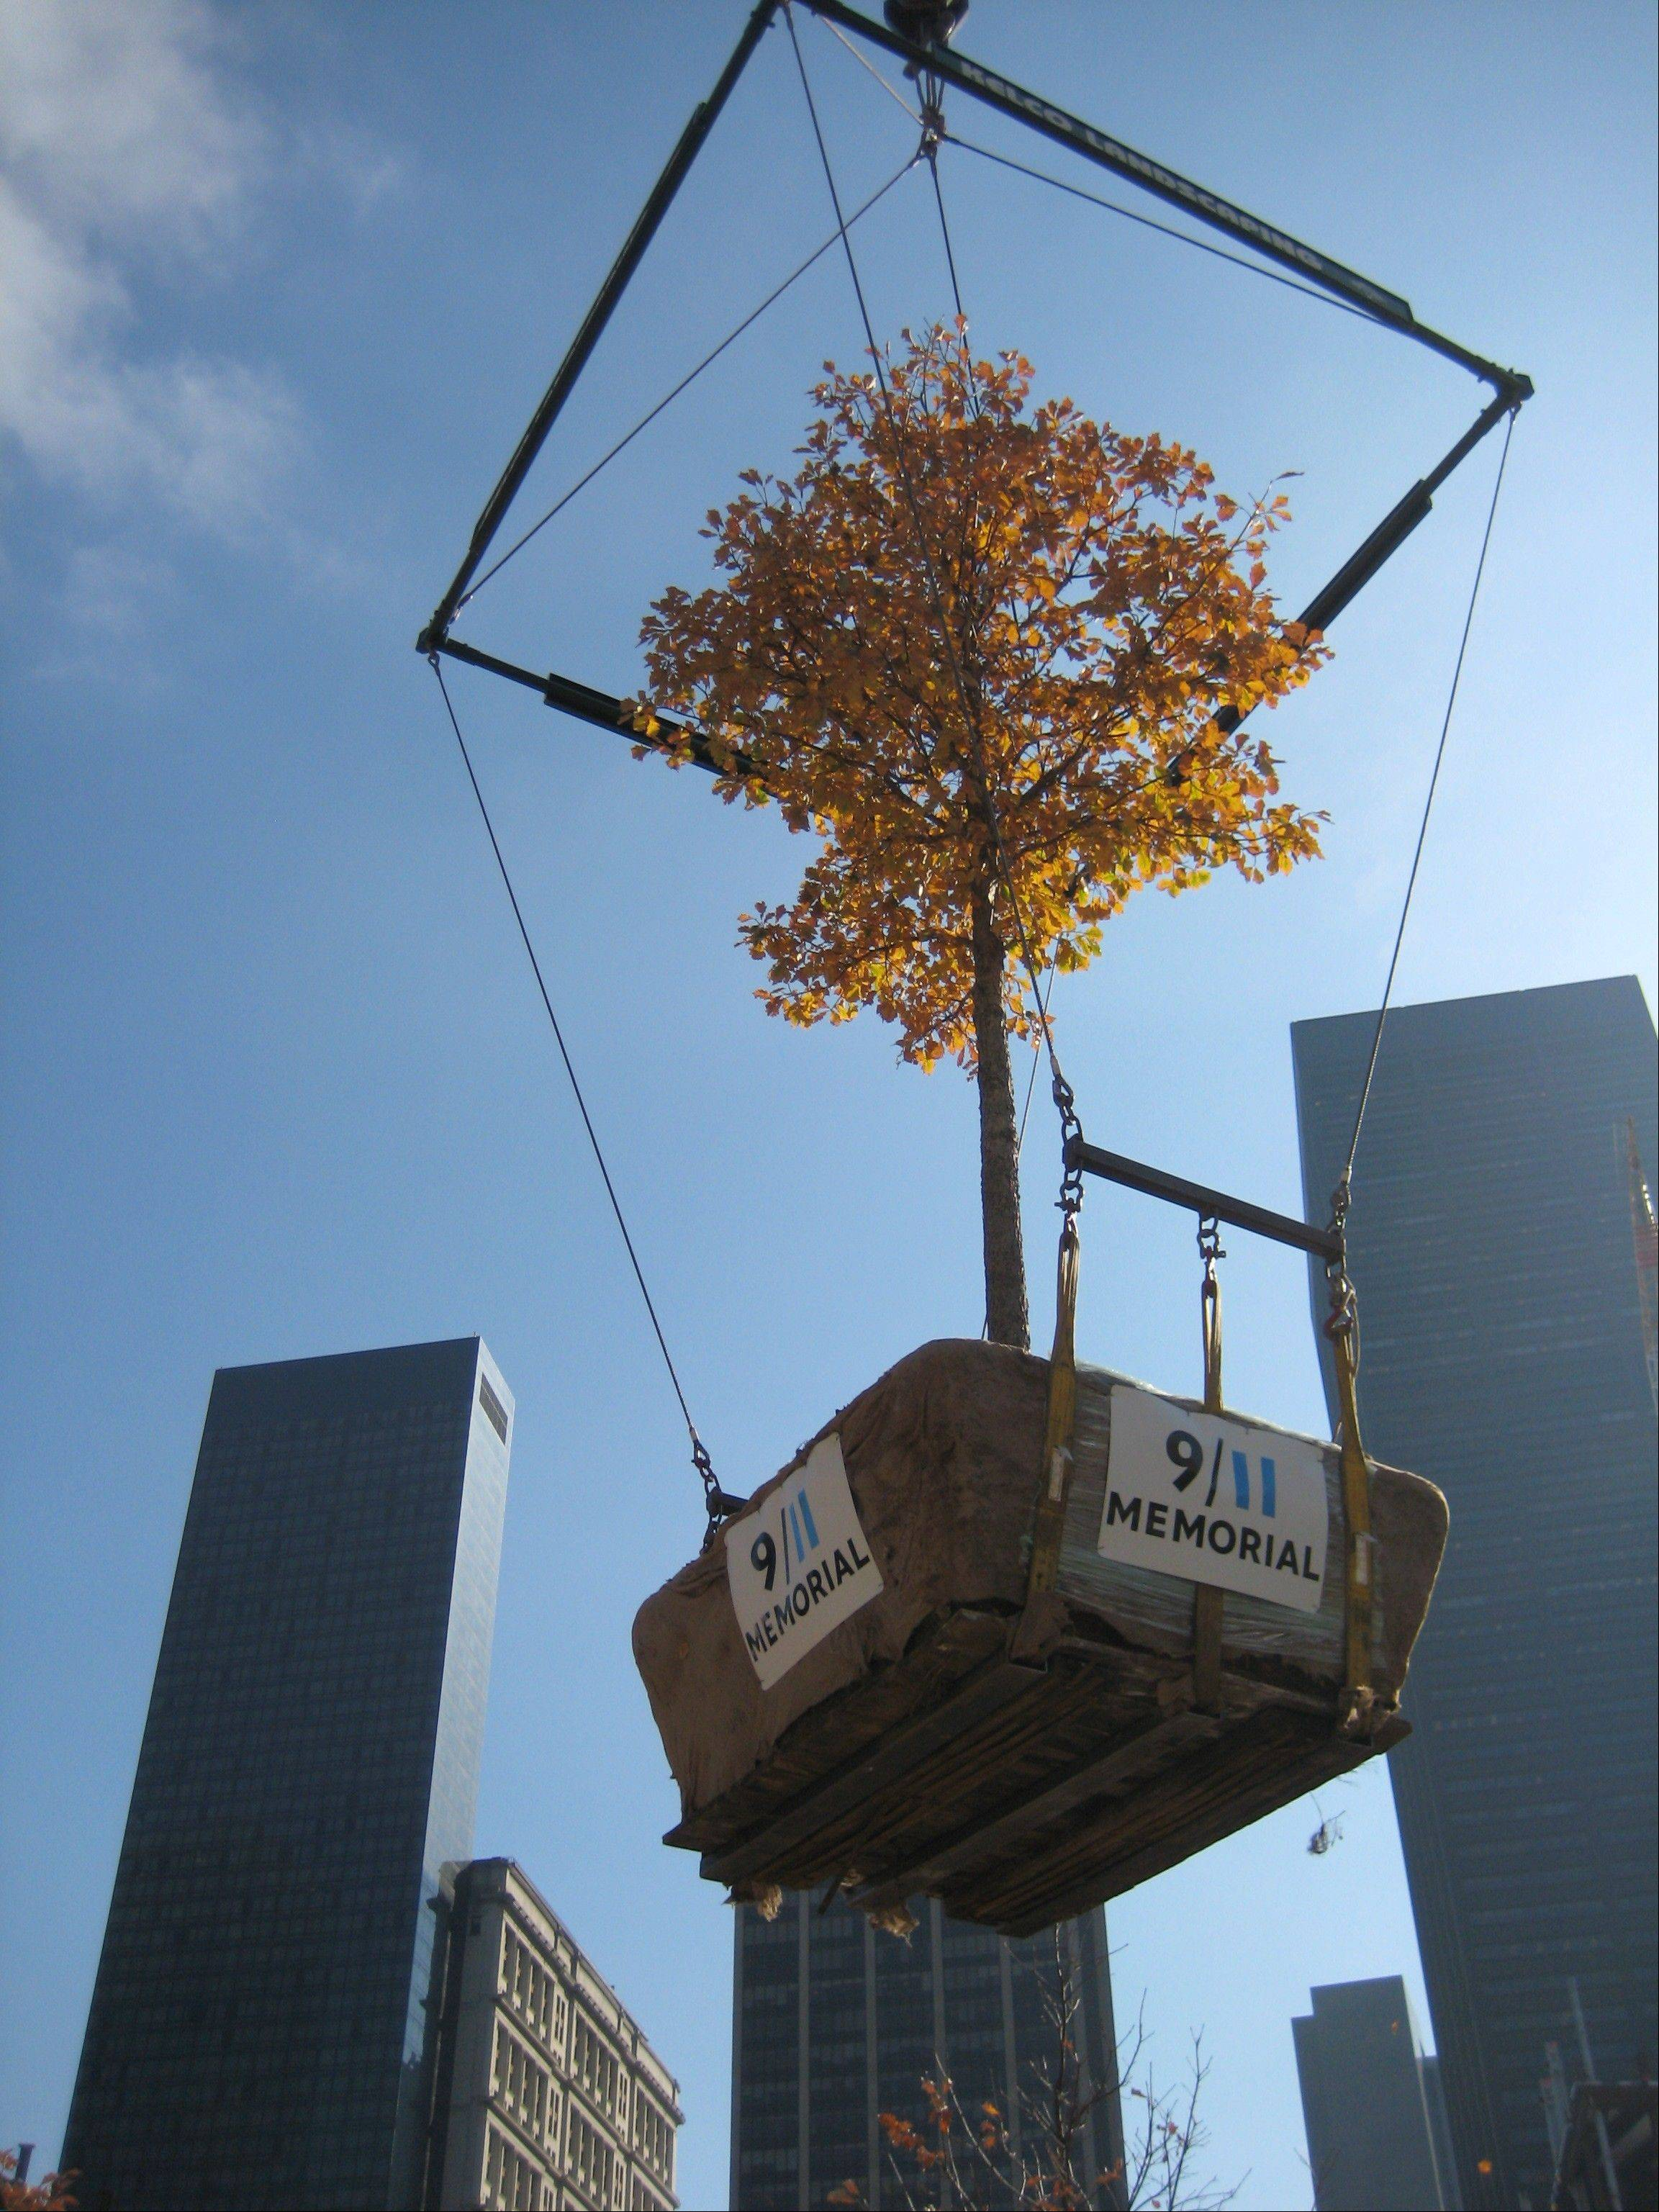 When Bartlett Tree Experts cared for the trees for the 9/11 site in Manhattan, they grew to a large size.